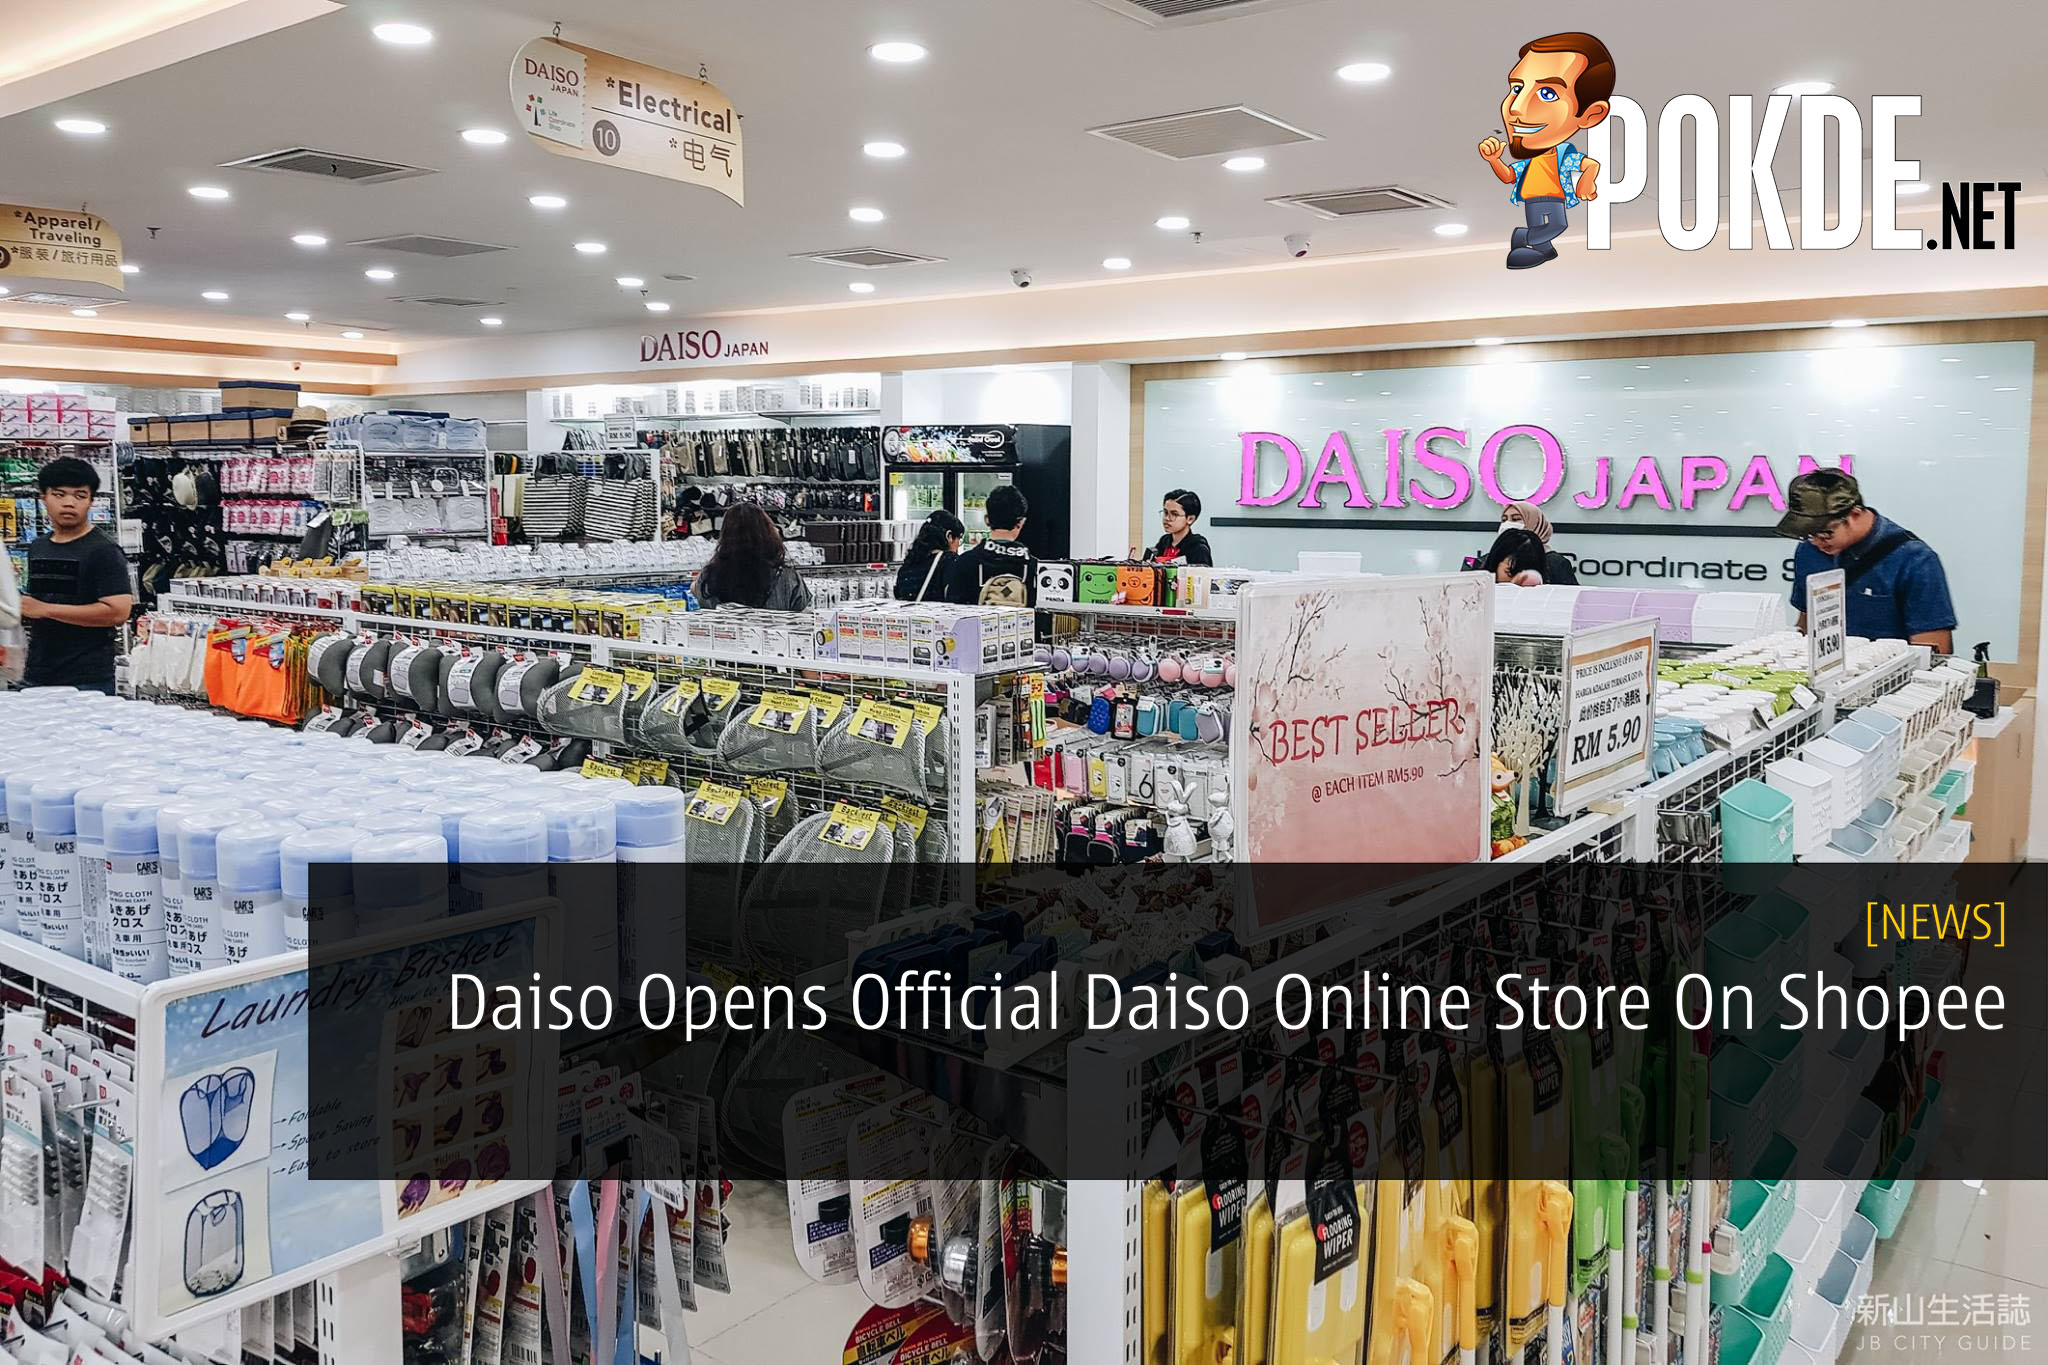 Daiso Opens Official Daiso Online Store On Shopee 9